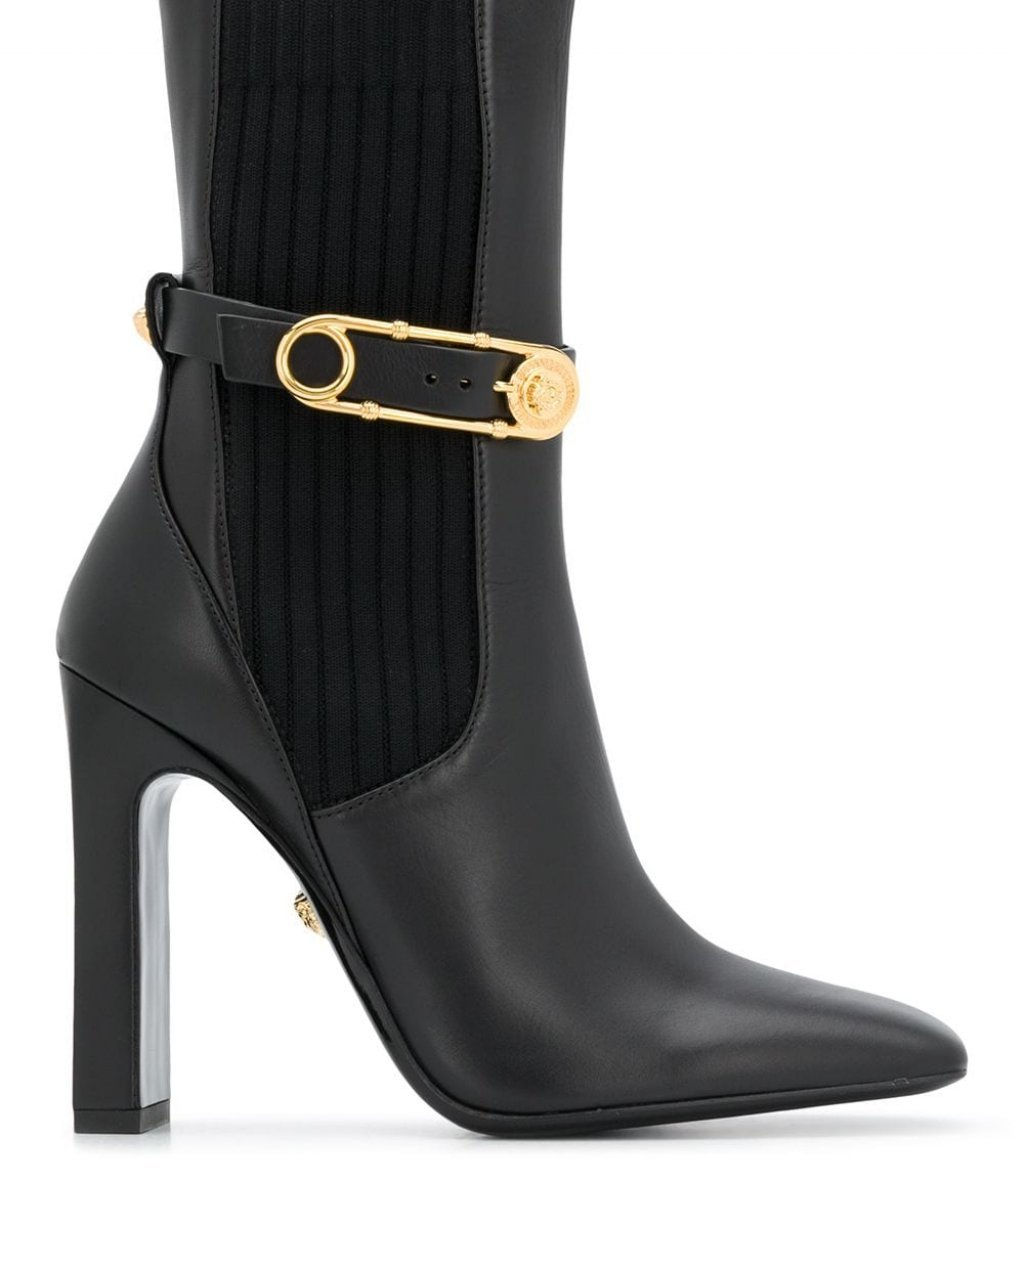 Versace square toe high-heeled boots